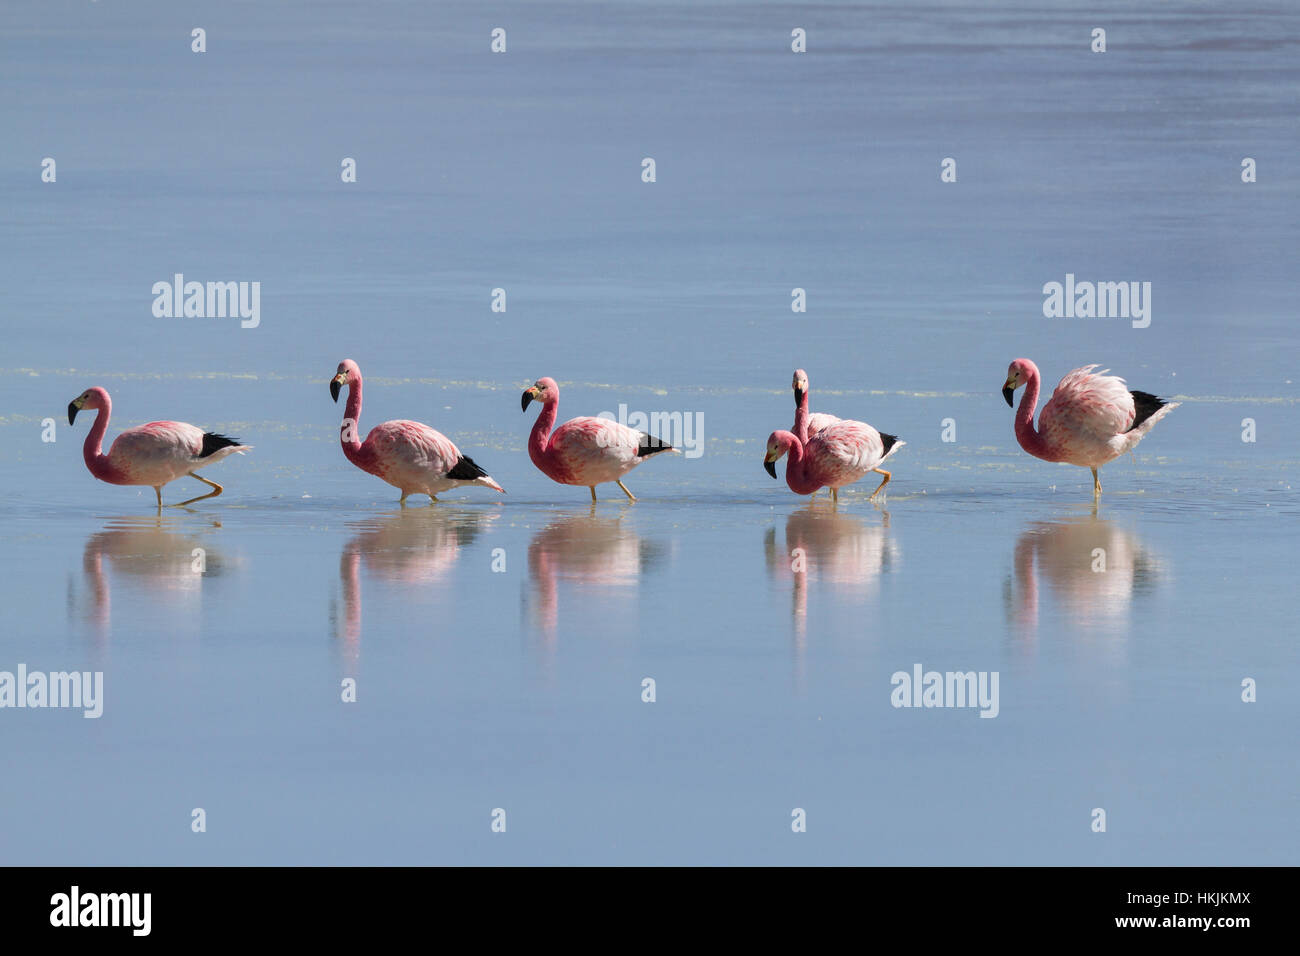 Flamingos at Laguna Ramaditas, Altiplano, Bolivia - Stock Image